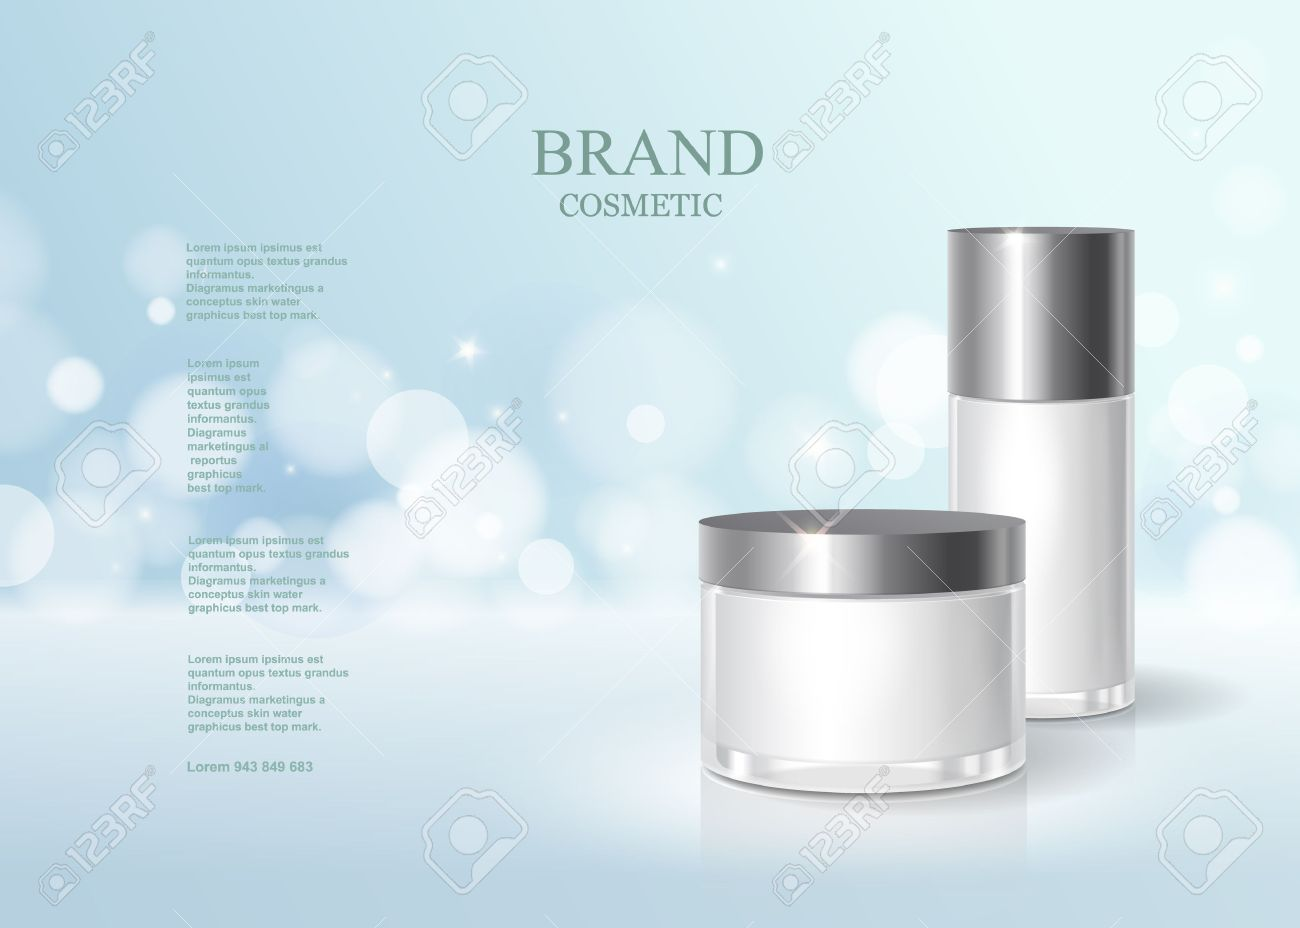 Cosmetic blue bottle package design with moisturizer cream or liquid, skin care product poster, sparkling background vector design. - 71001907